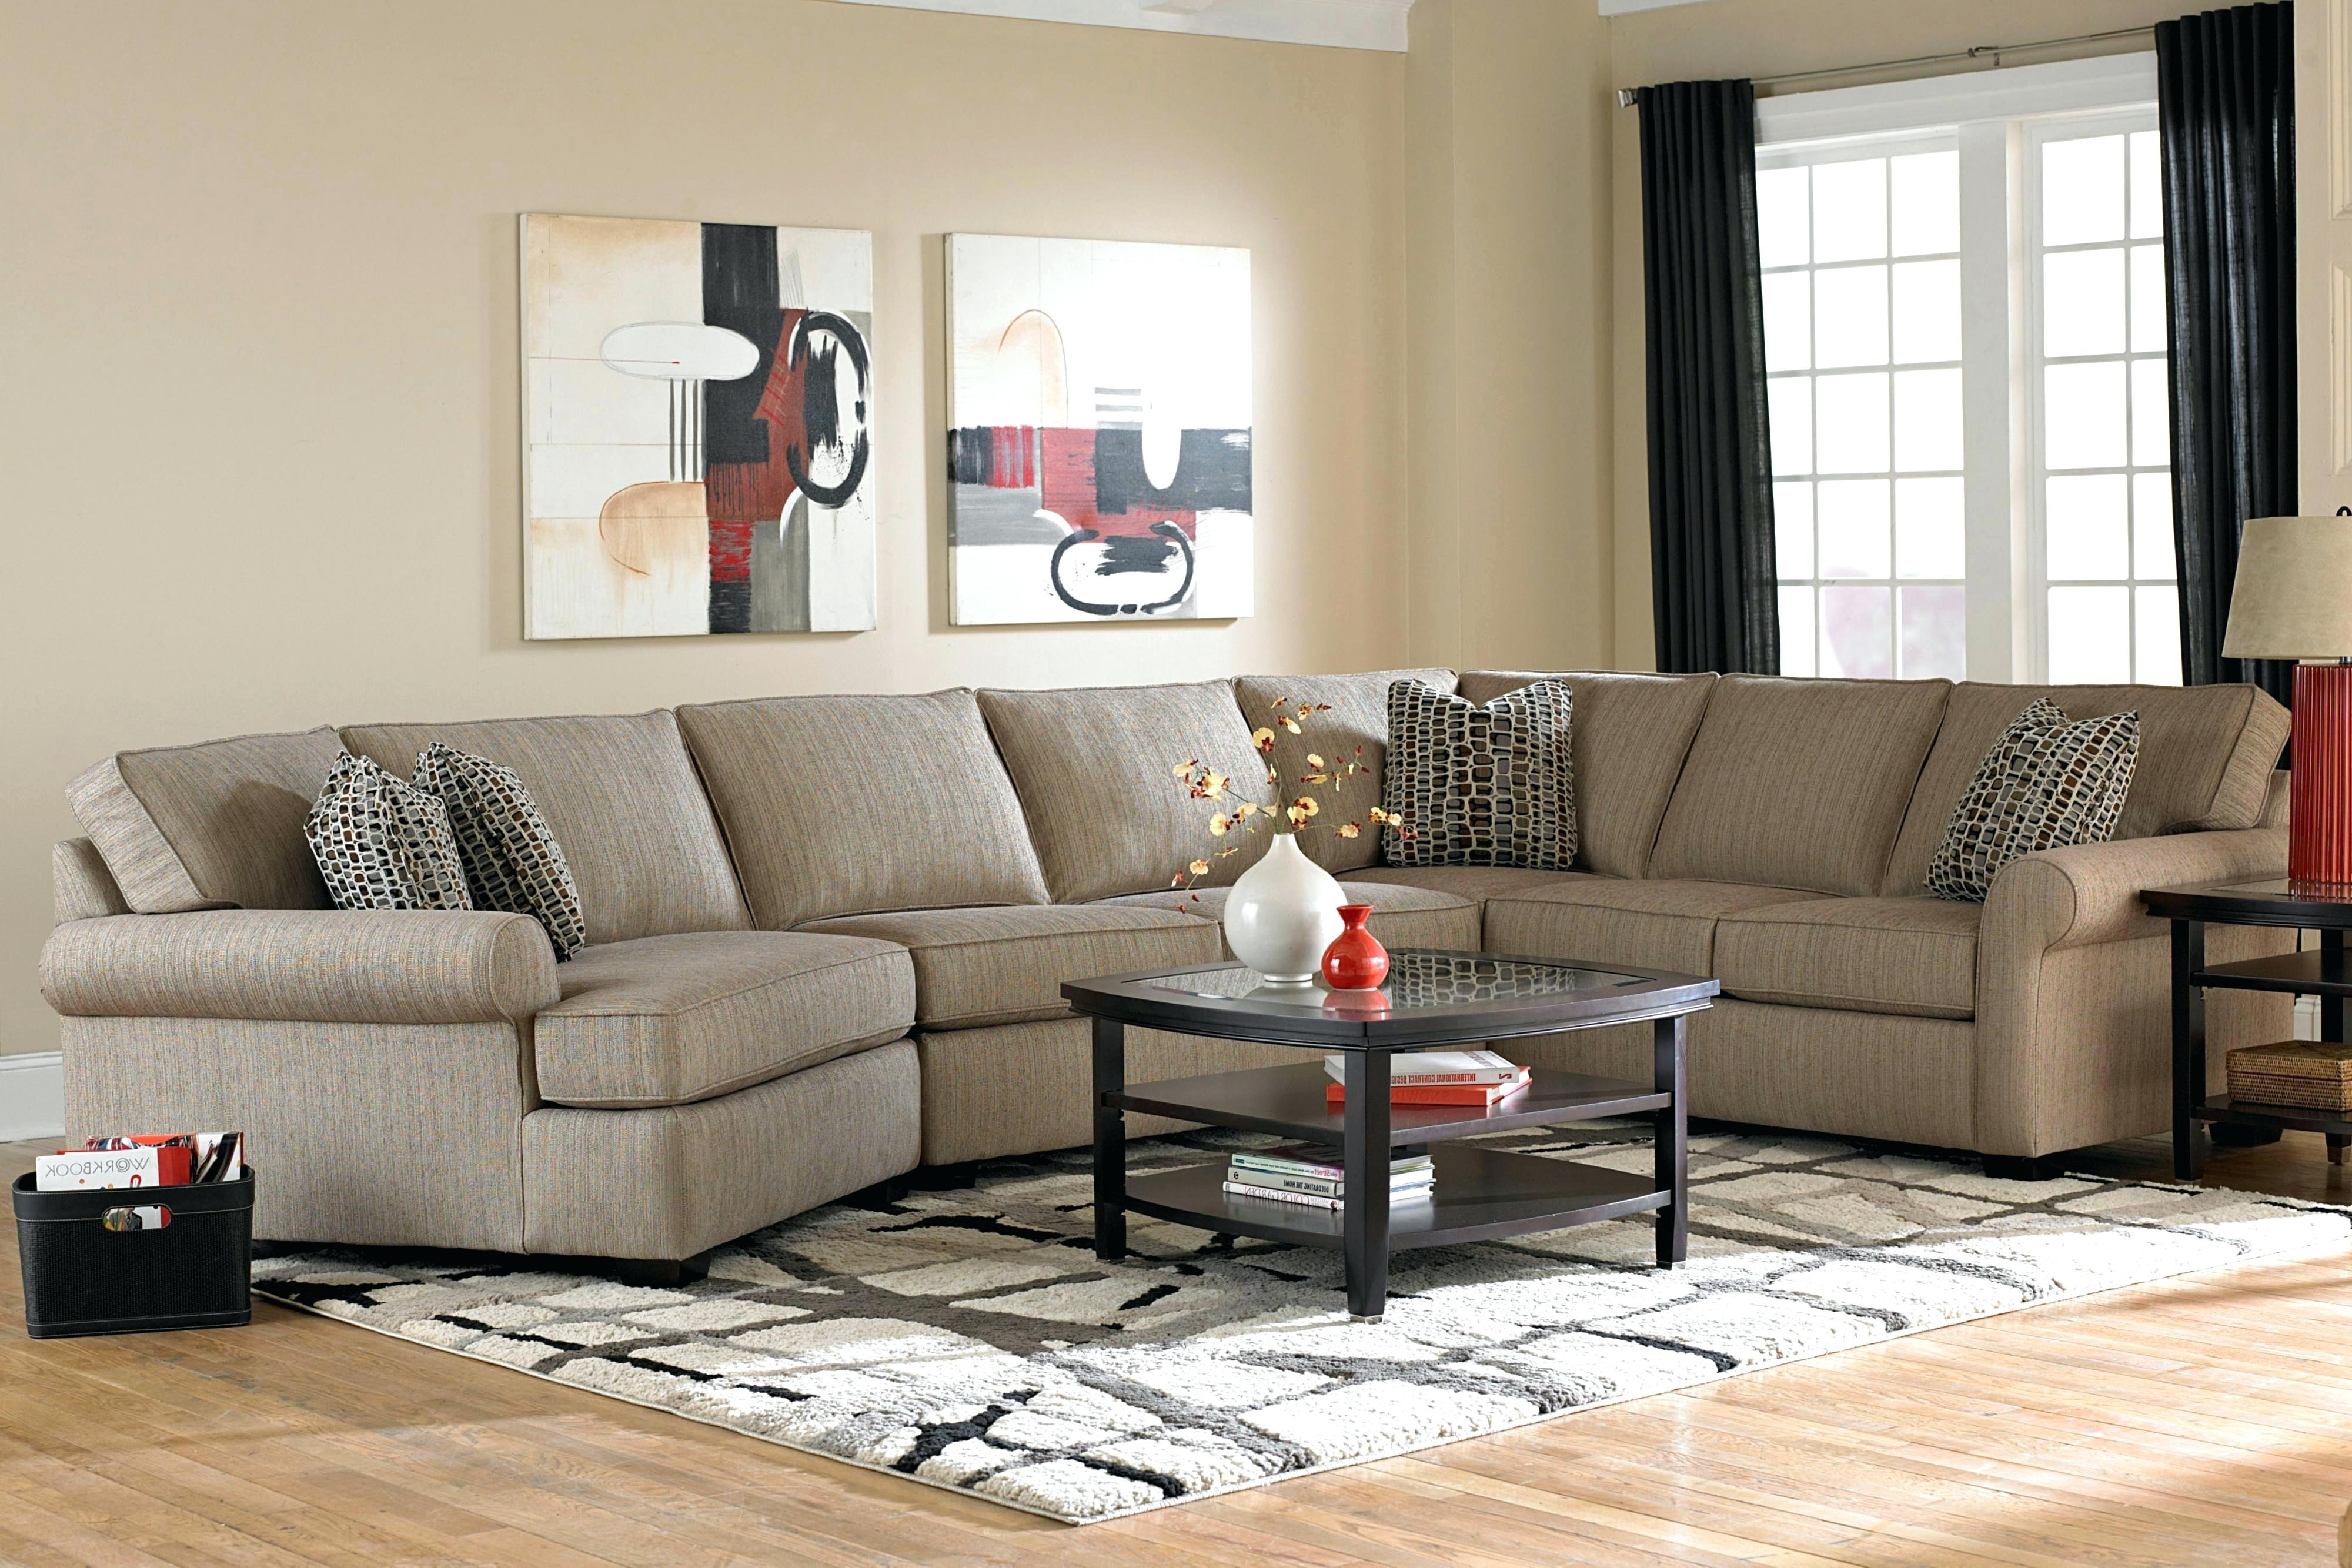 Broyhill Sectional Sofas Regarding Most Up To Date Broyhill Furniture Sale 3 Sofa With All Around Wood Base – 4Parkar (View 3 of 20)